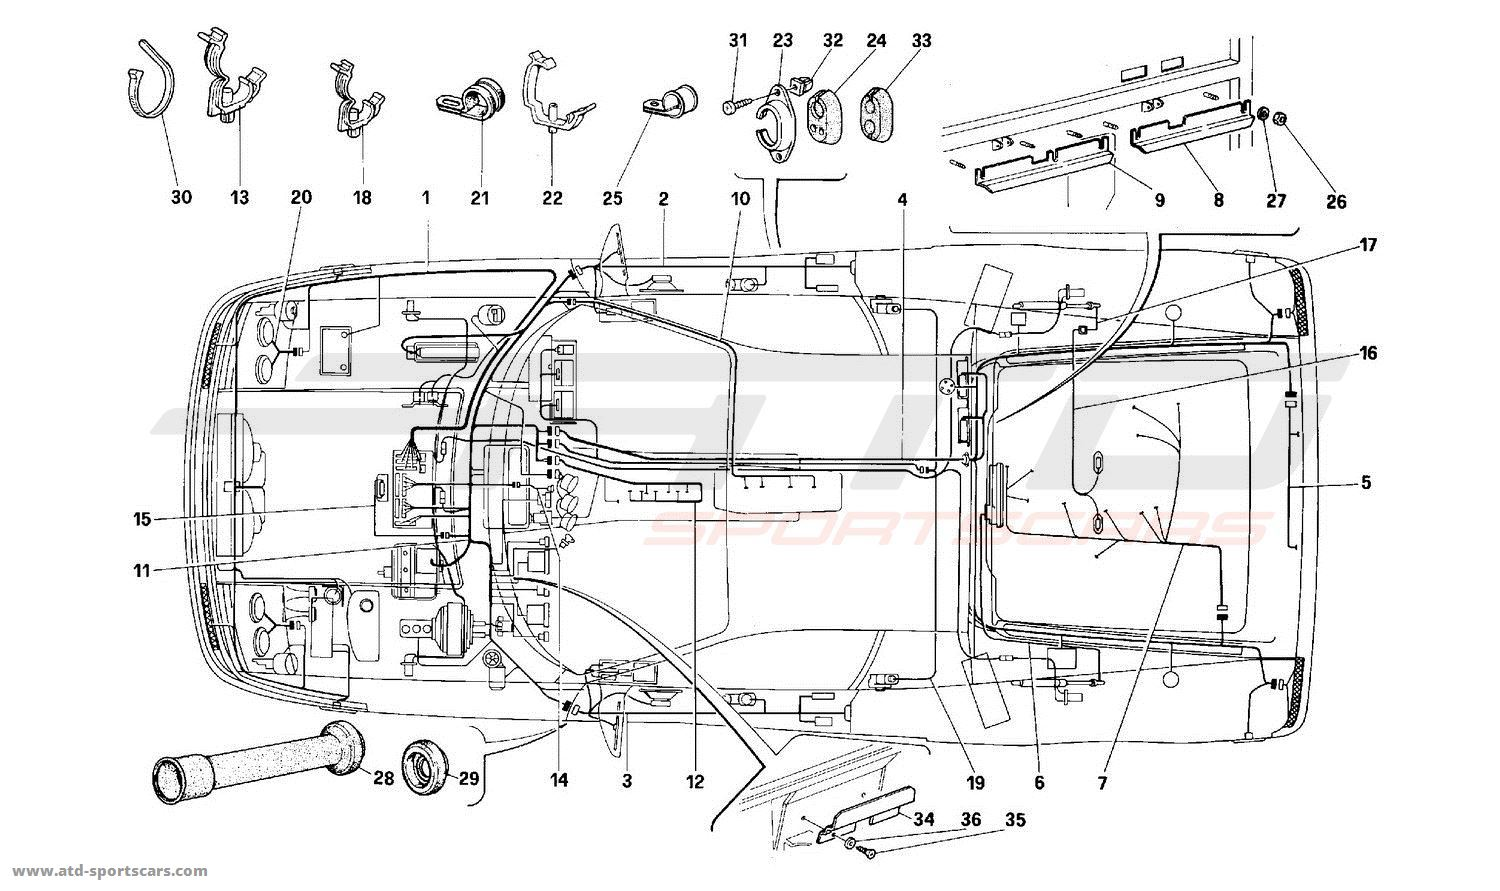 Jaguar Xj6 Engine Diagram 93. Jaguar. Auto Wiring Diagram